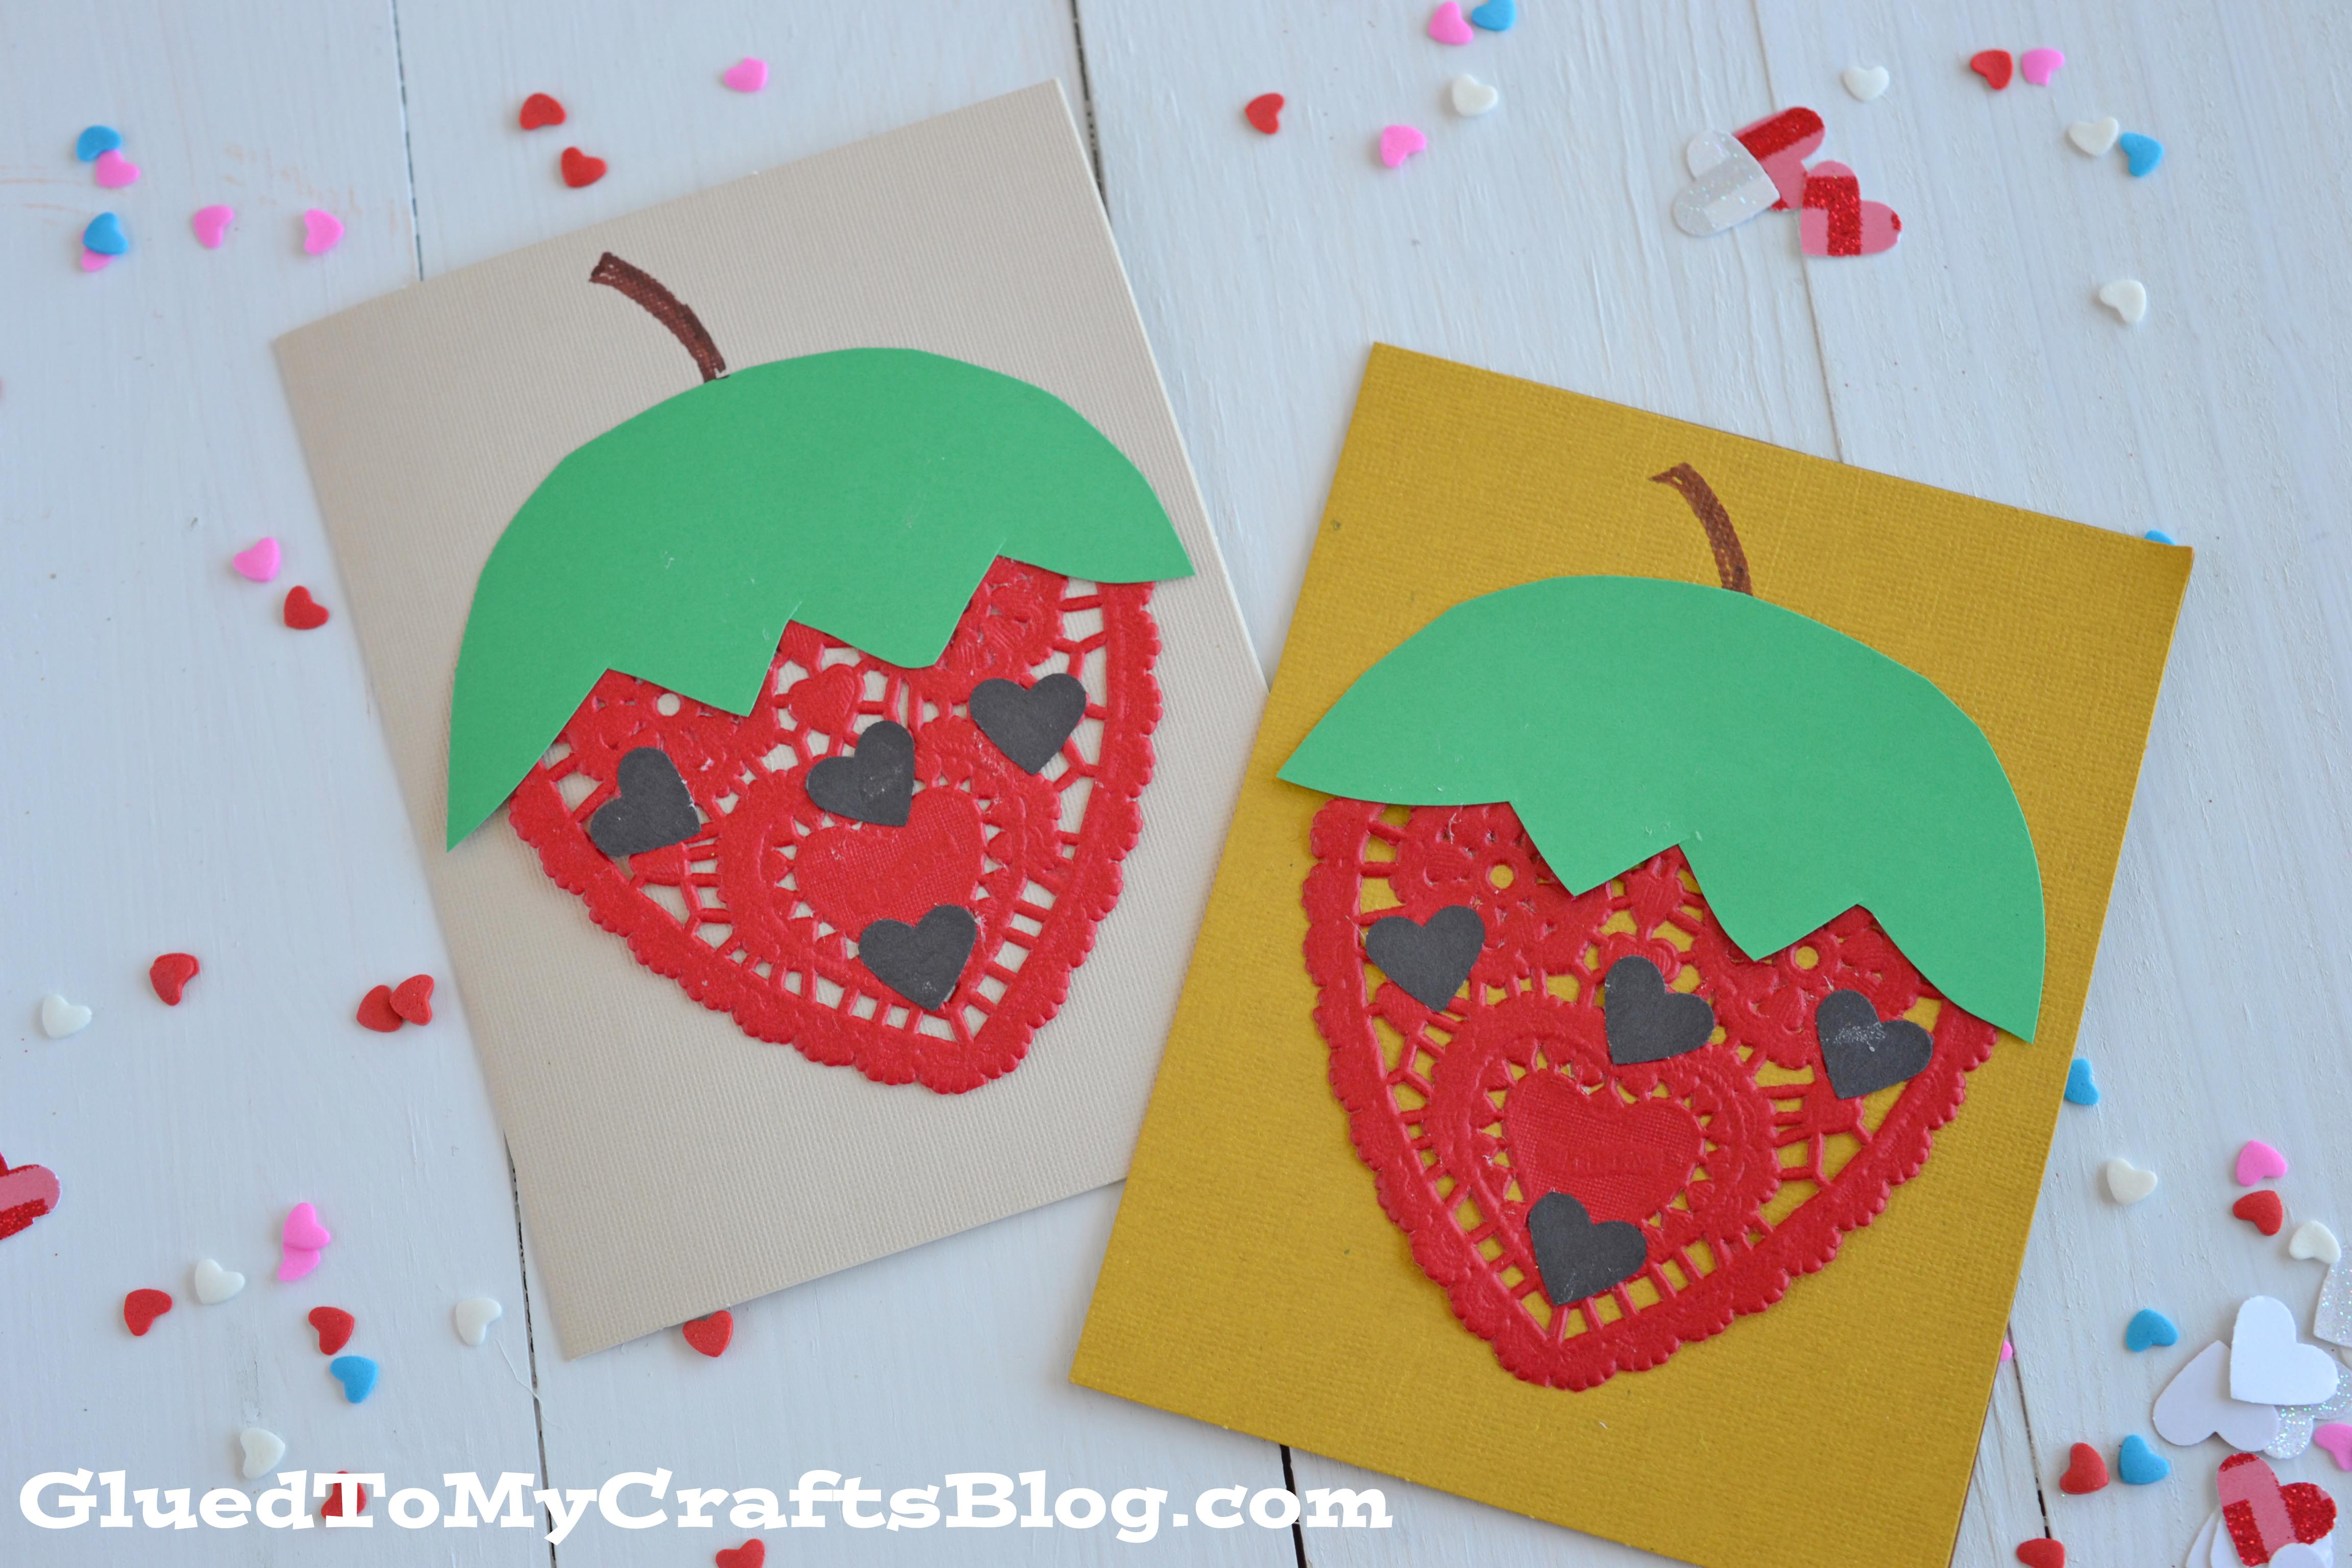 Paper Doily Crafts Christmas